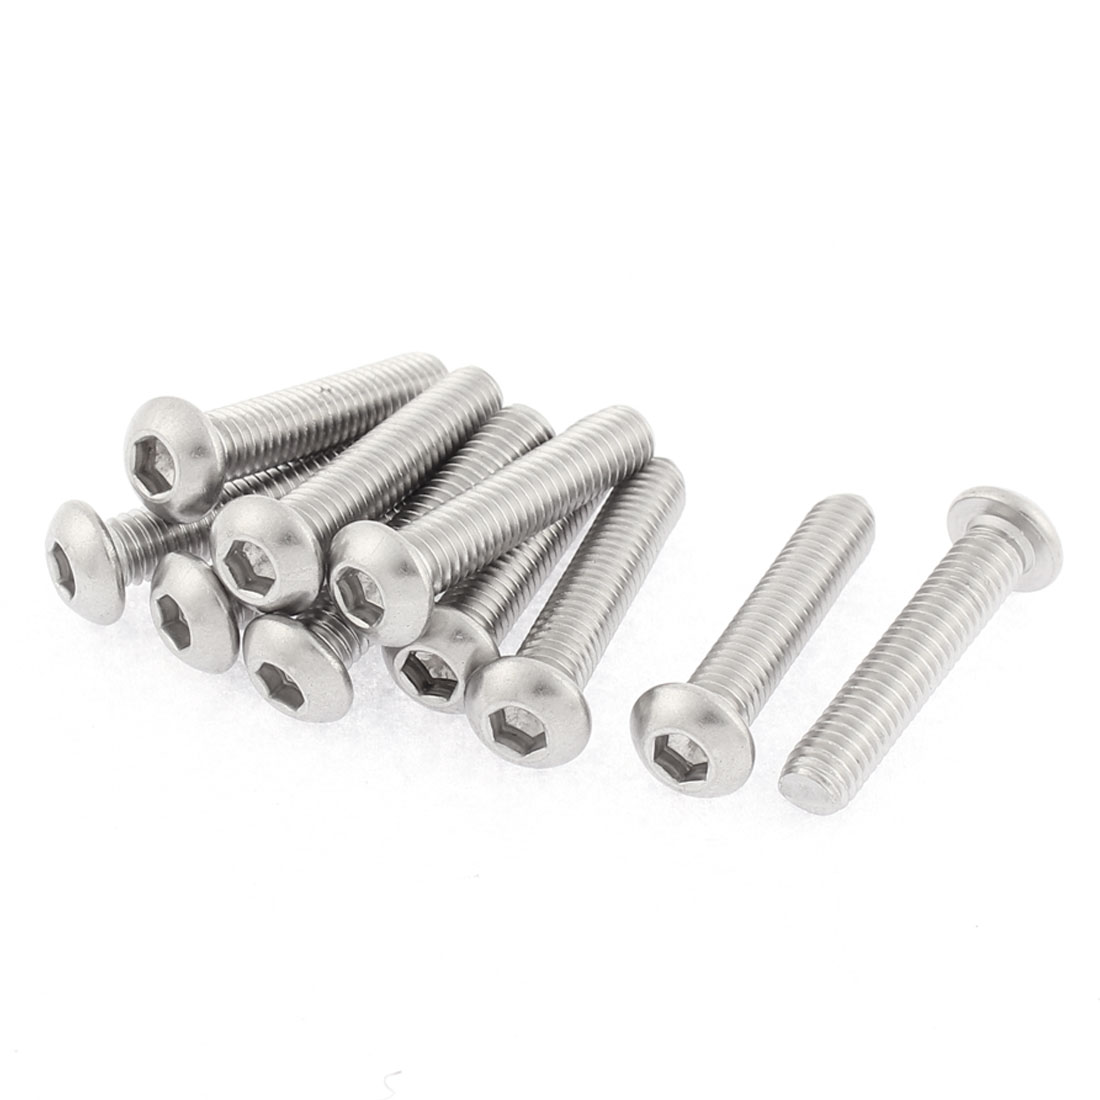 10pcs 304 Stainless Steel M6 Thread Button Head Hex Socket Screws Fasteners